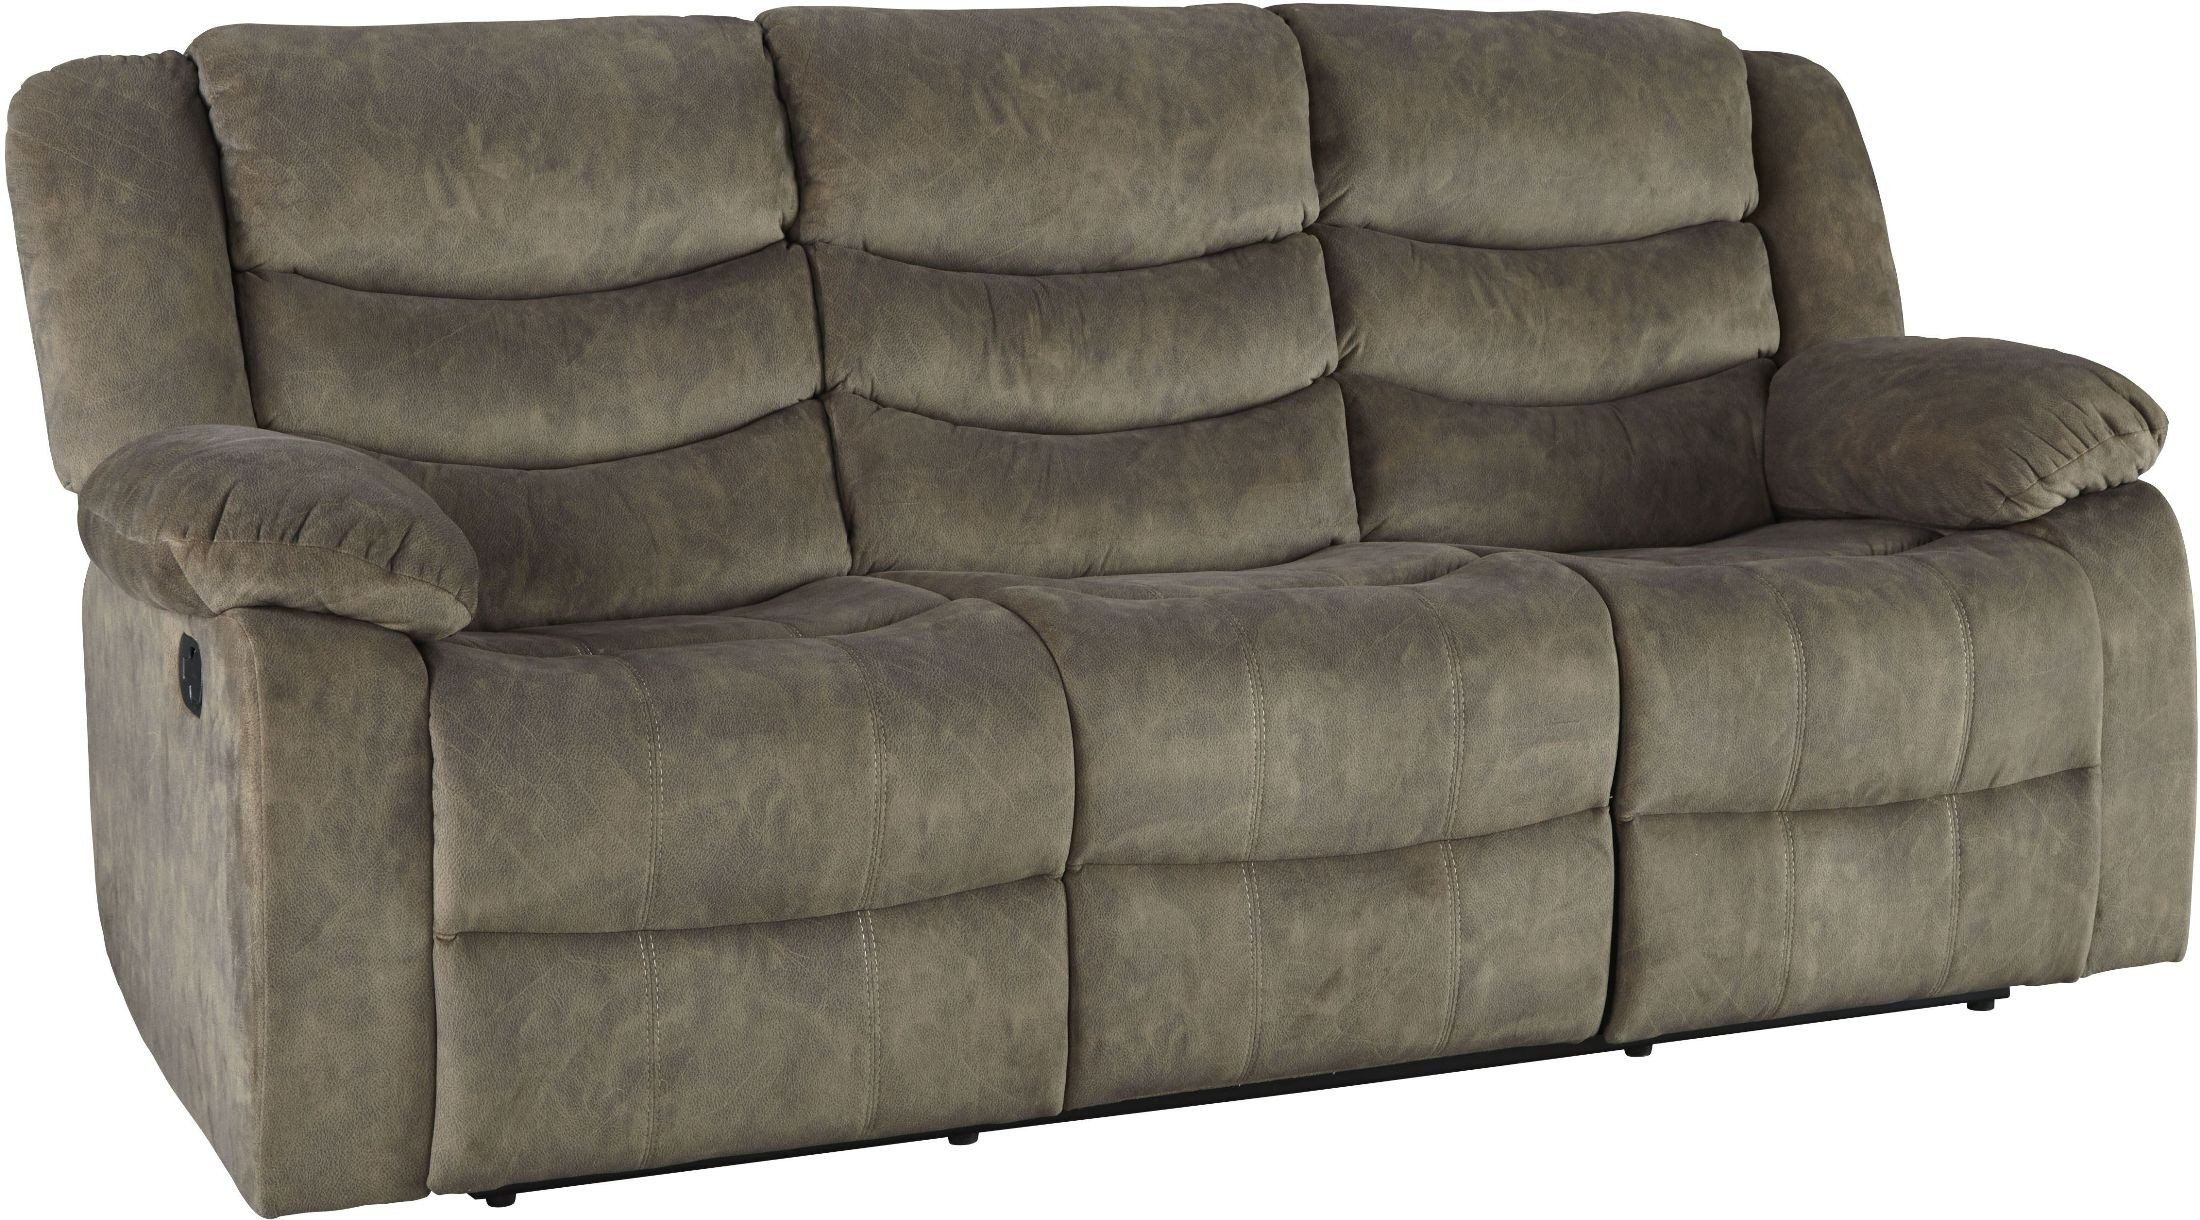 Ridgecrest Tan Reclining Sofa